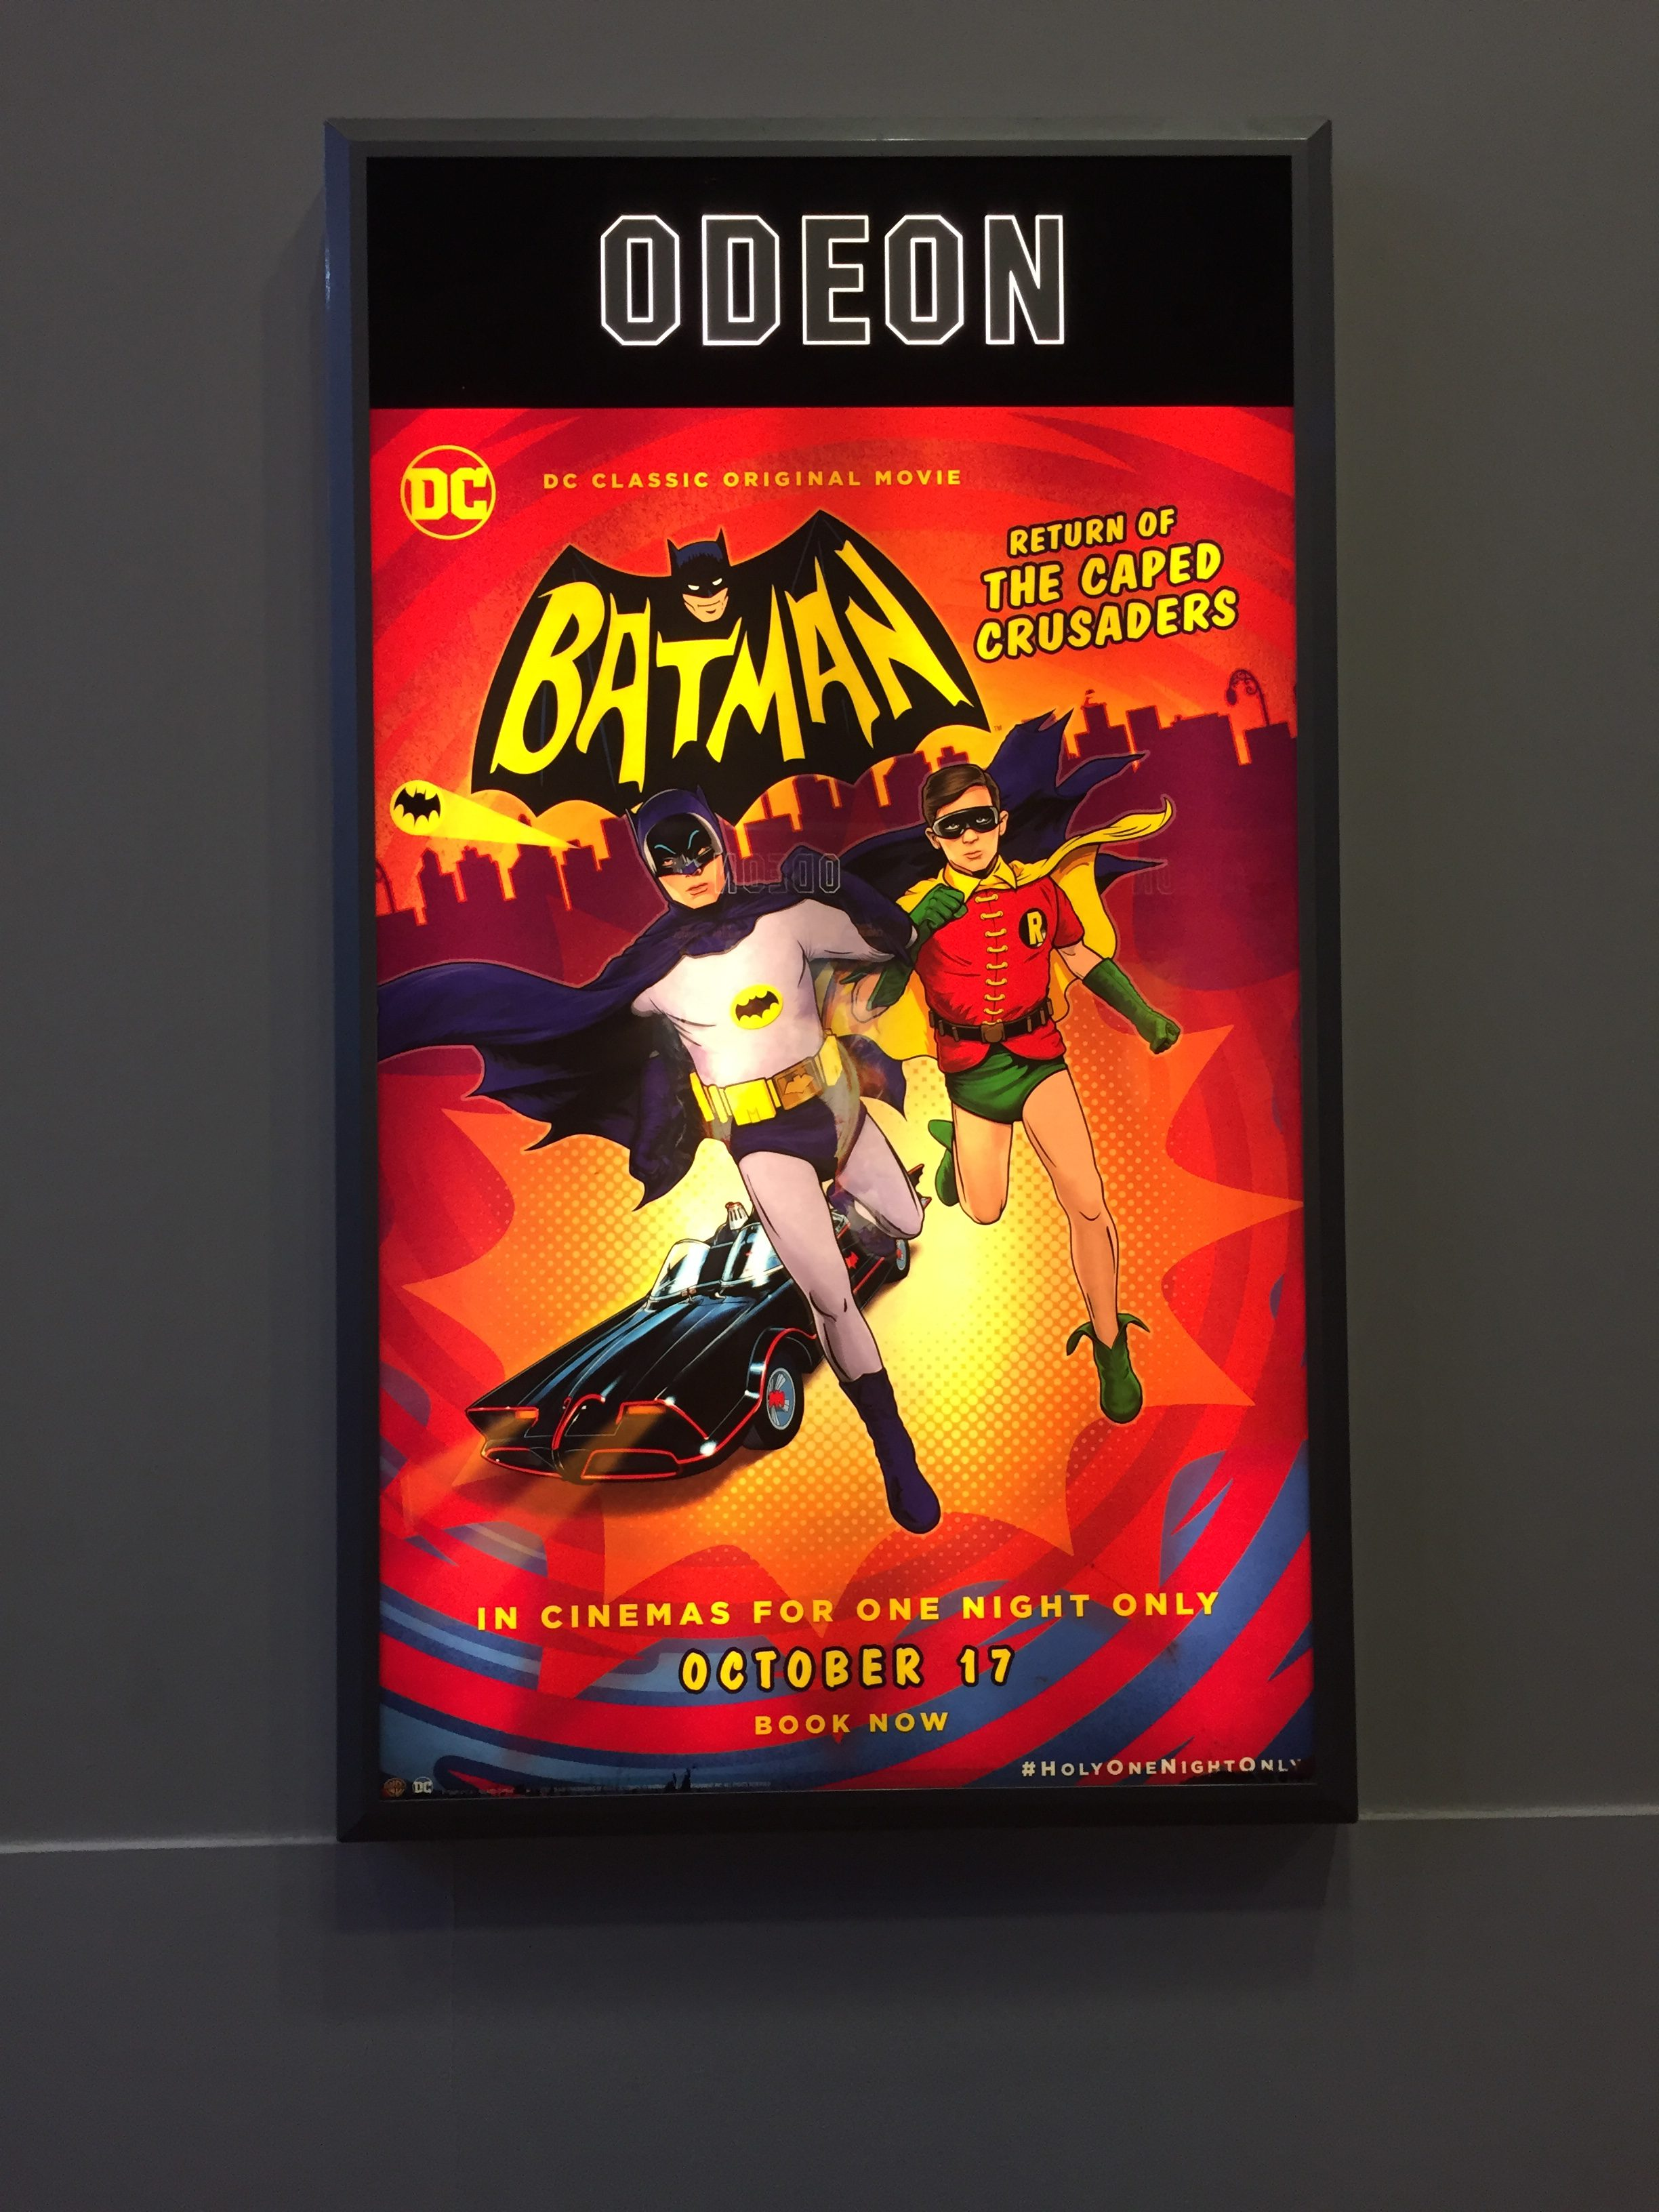 Batman: Return of the Caped Crusaders cinema poster